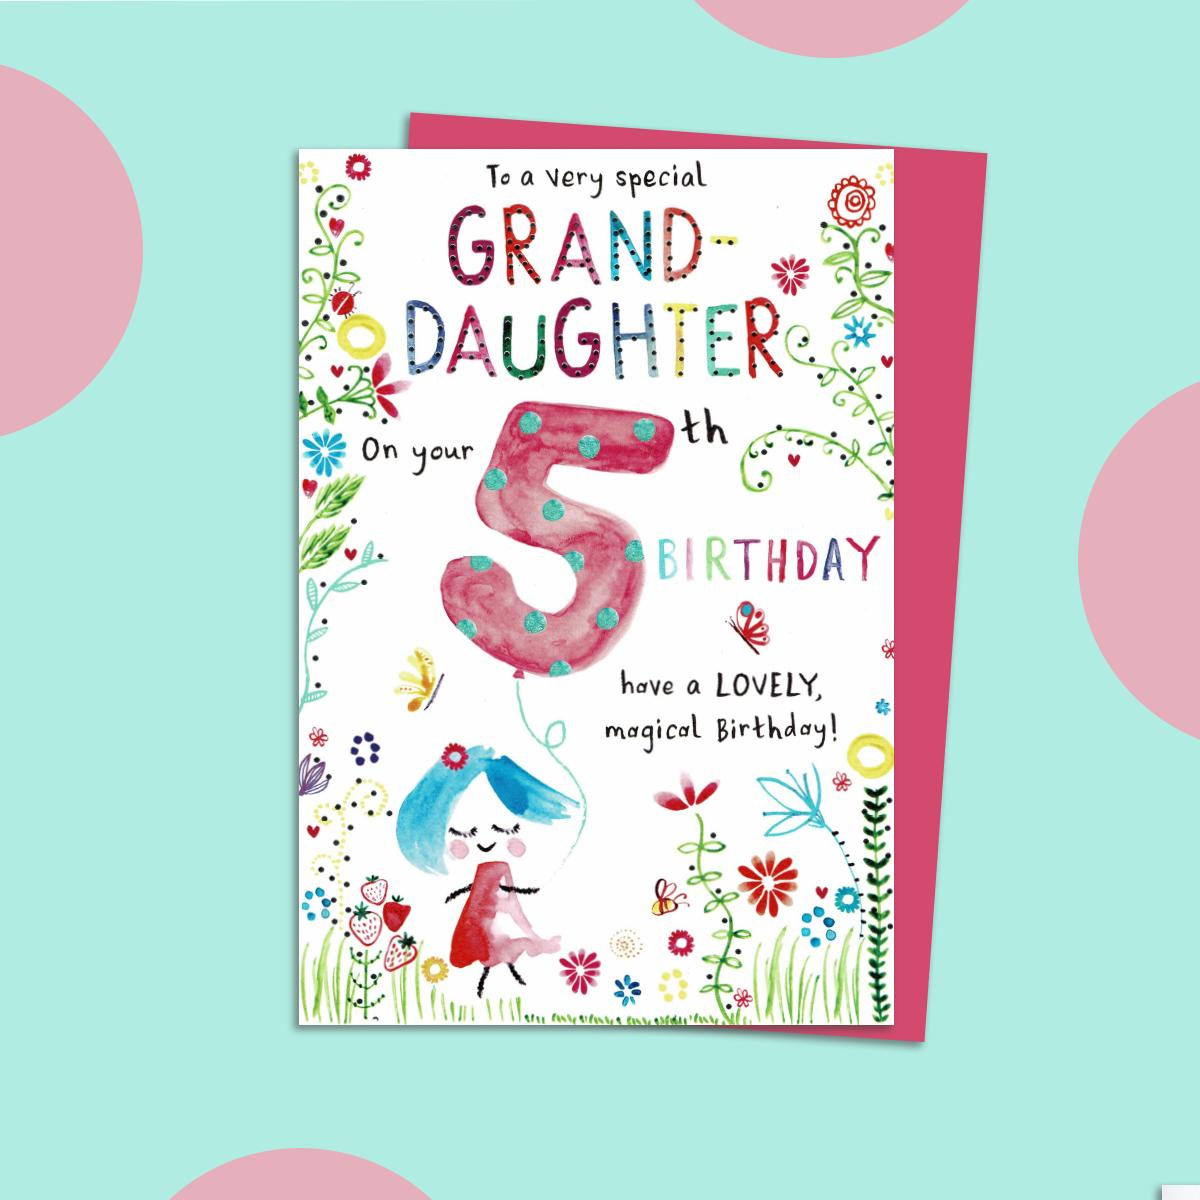 Special Granddaughter Age 5 Birthday Card Sitting On A Display Shelf